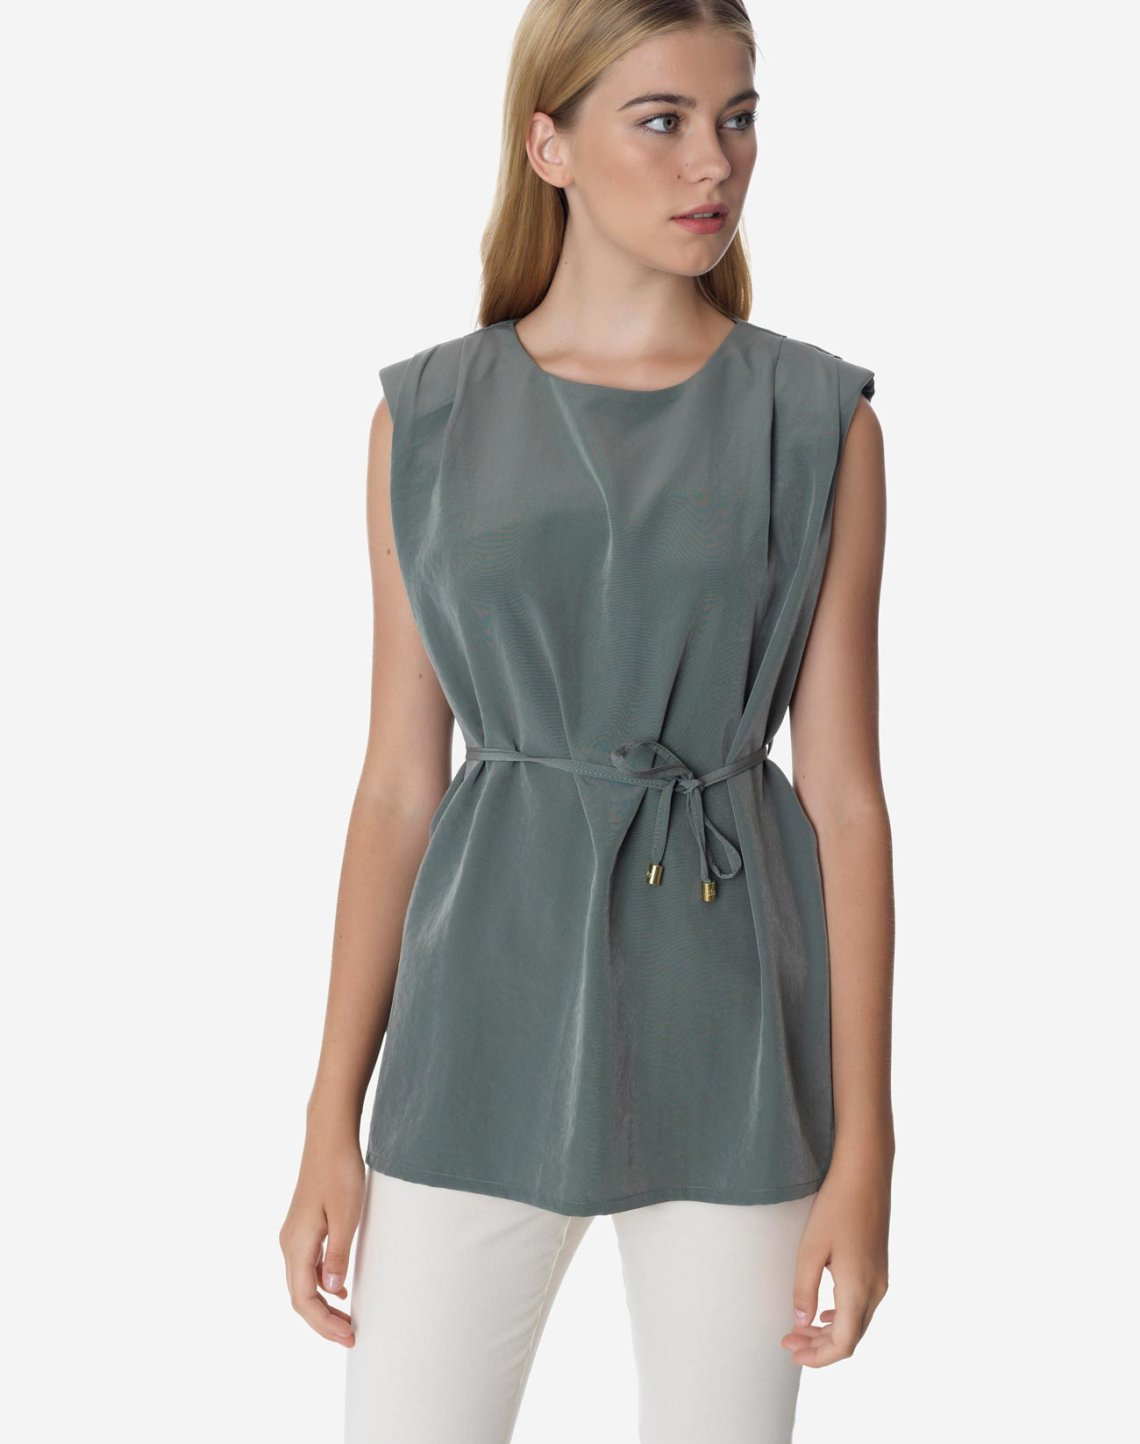 Top with shoulder pads and belt